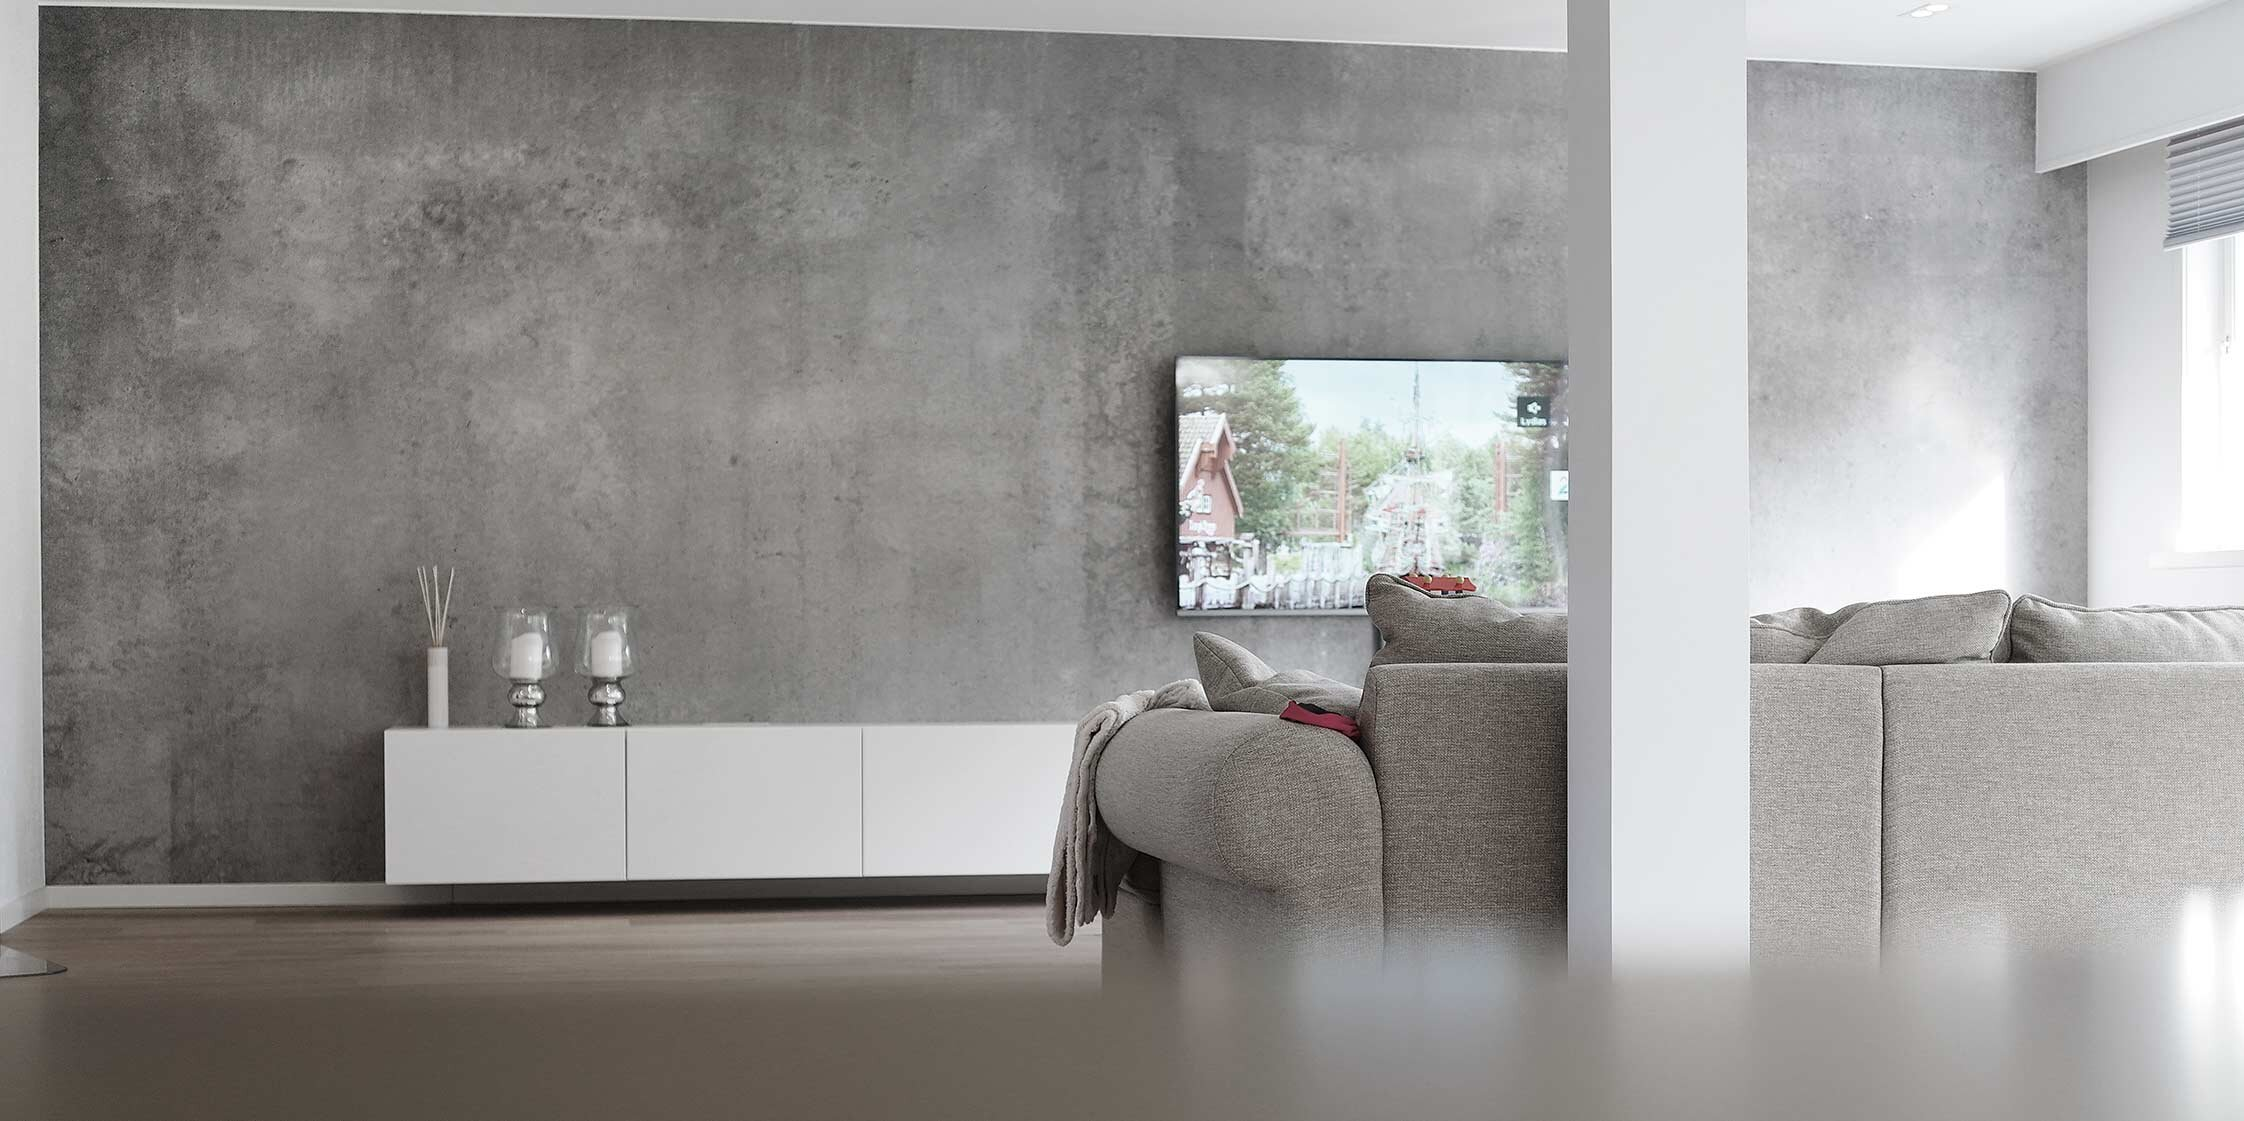 ConcreteWall | Wallcovering Company